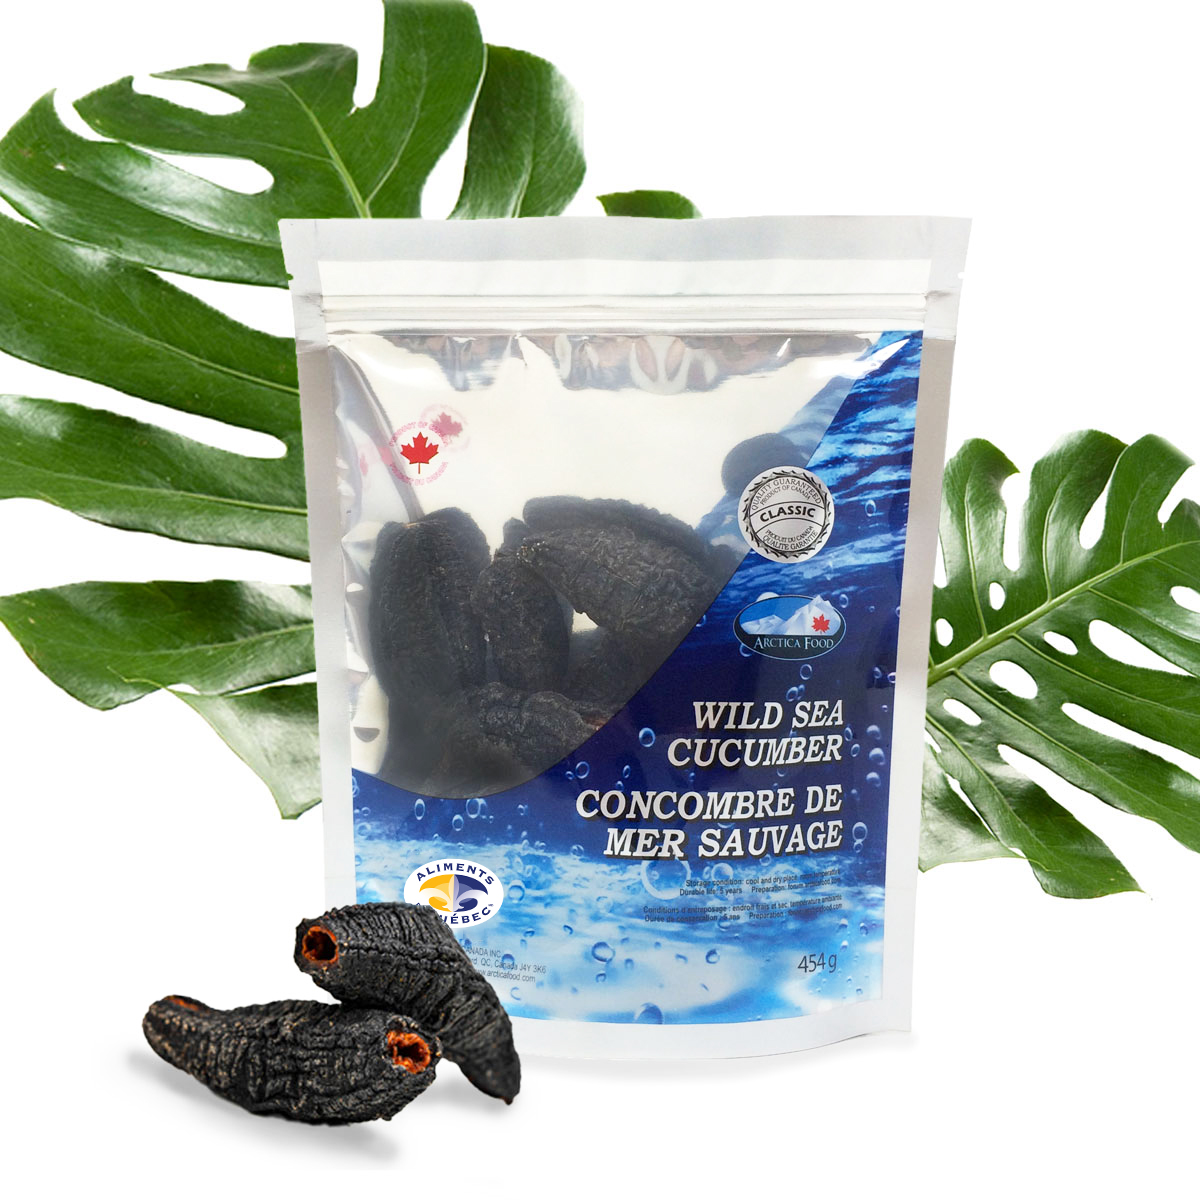 Dried Wild Sea Cucumber - Classic 454g